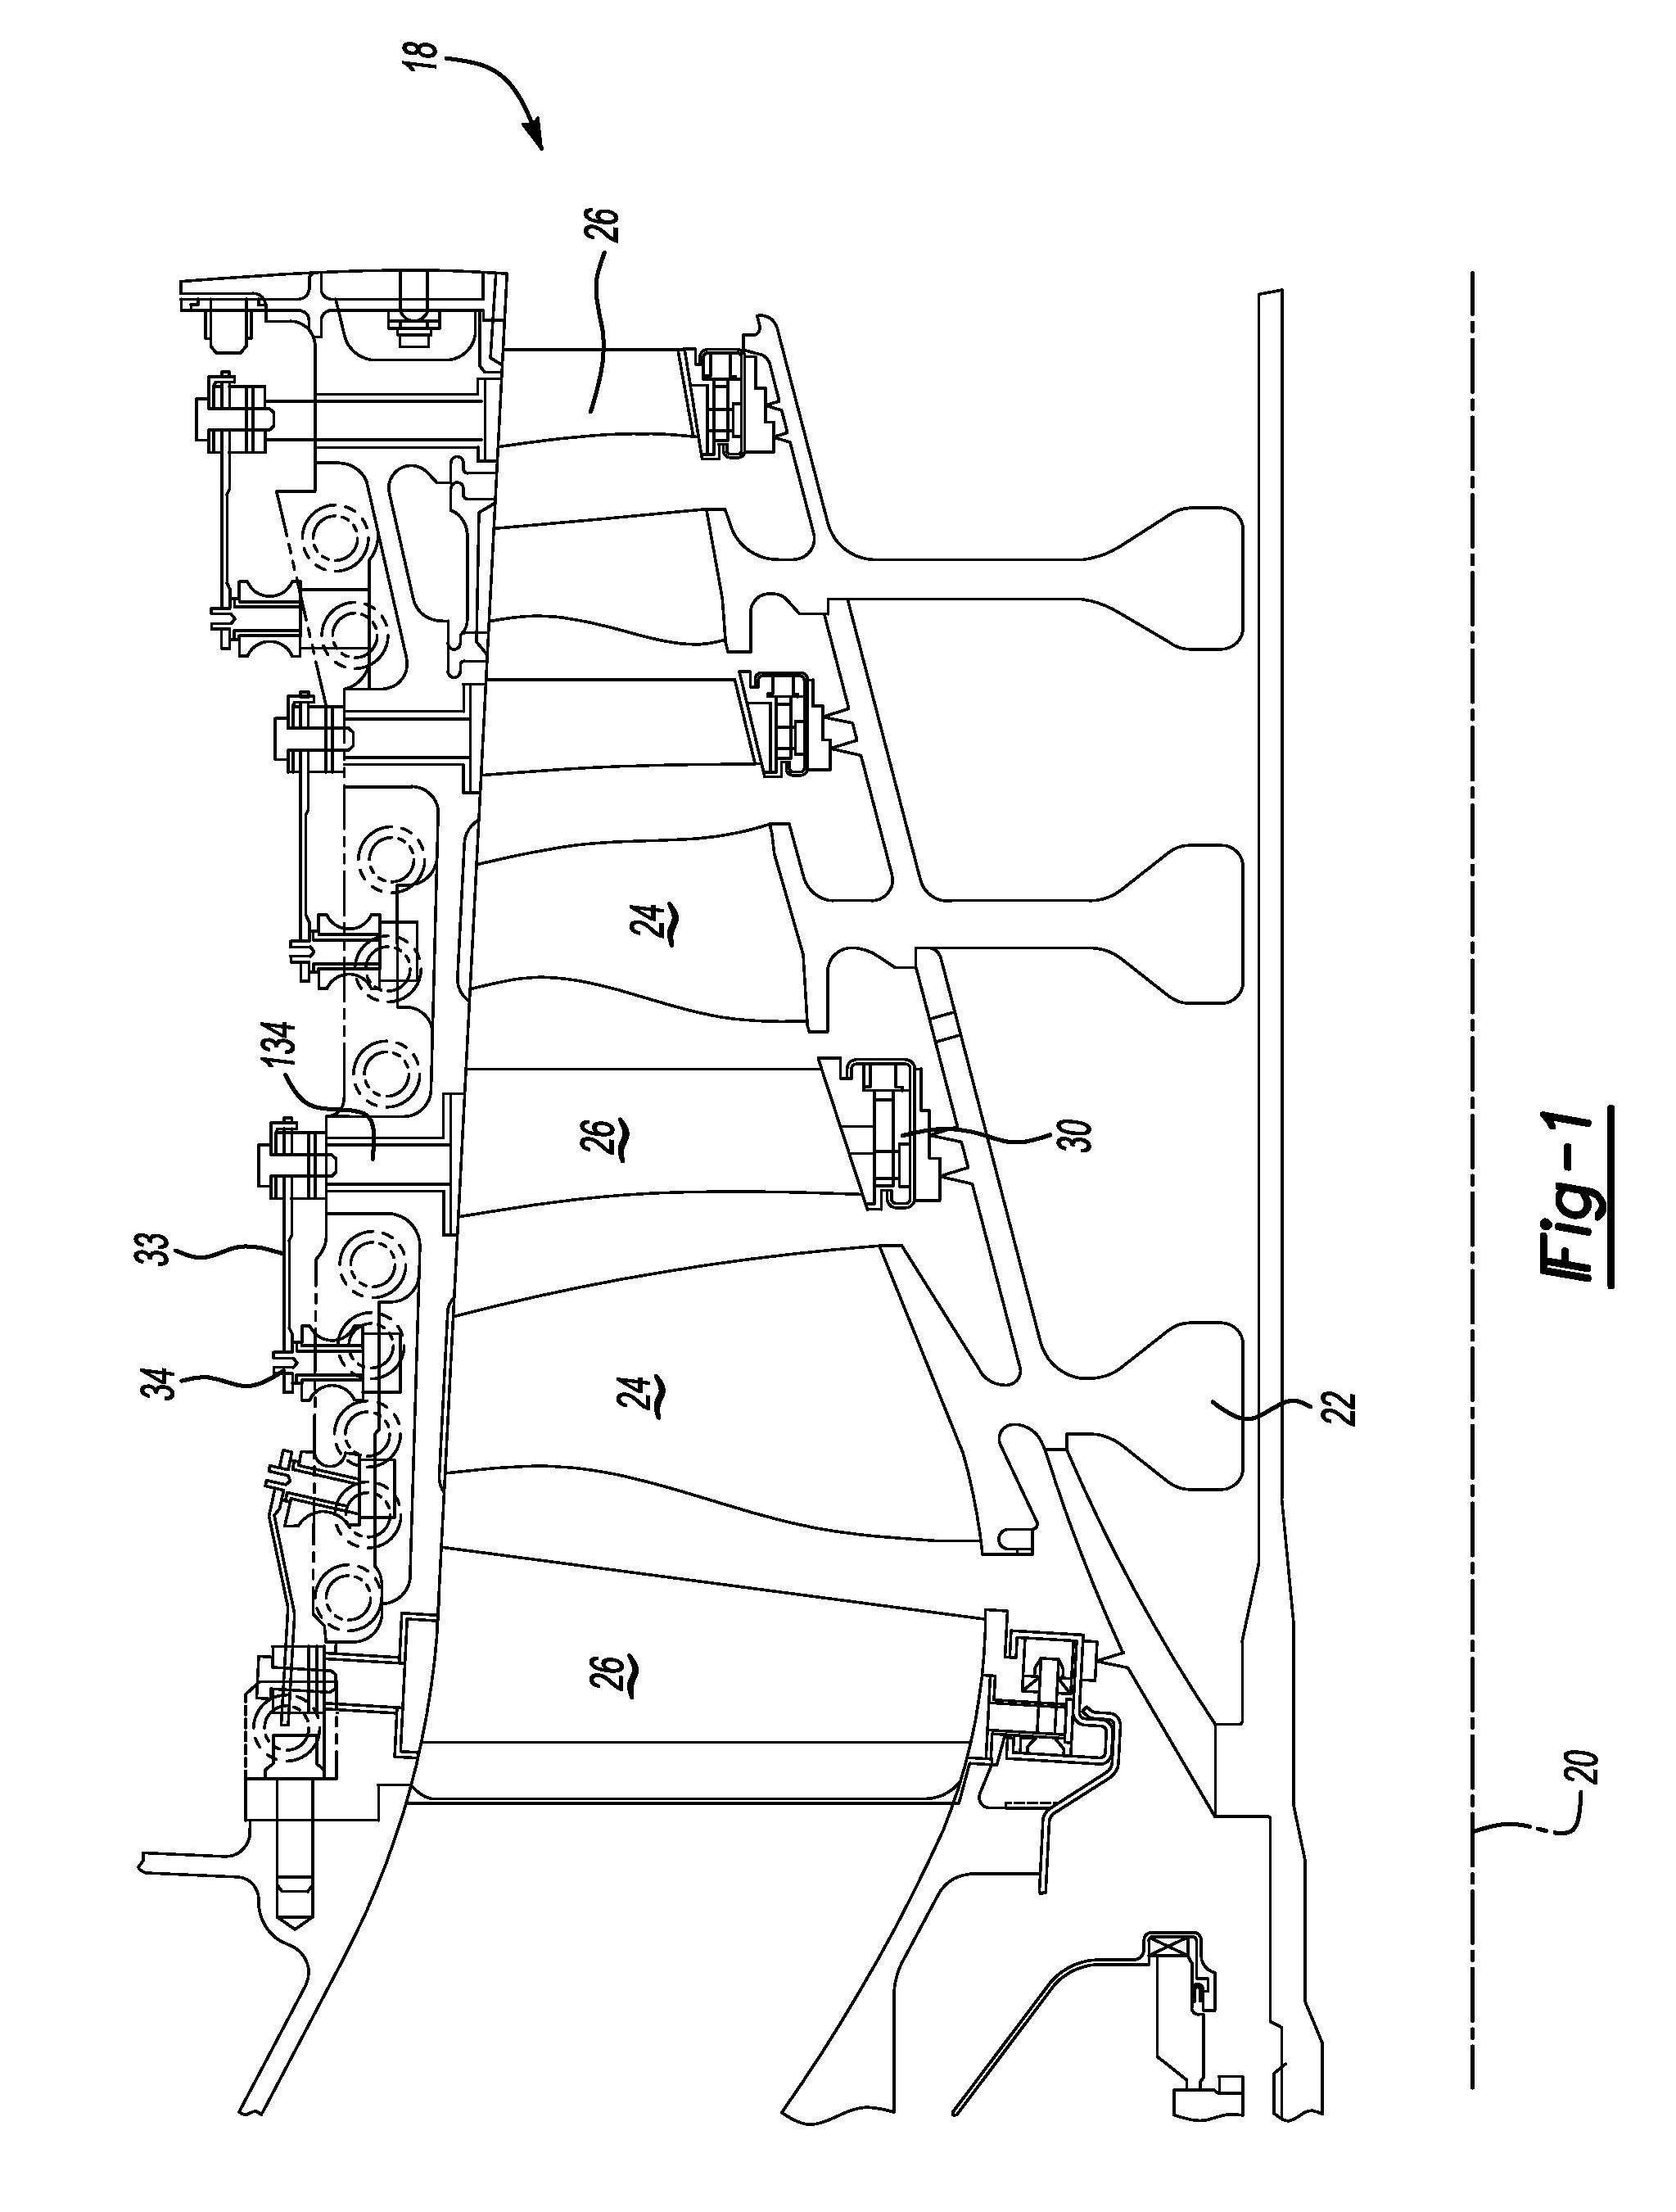 Patent US Small radial profile shroud for variable vane